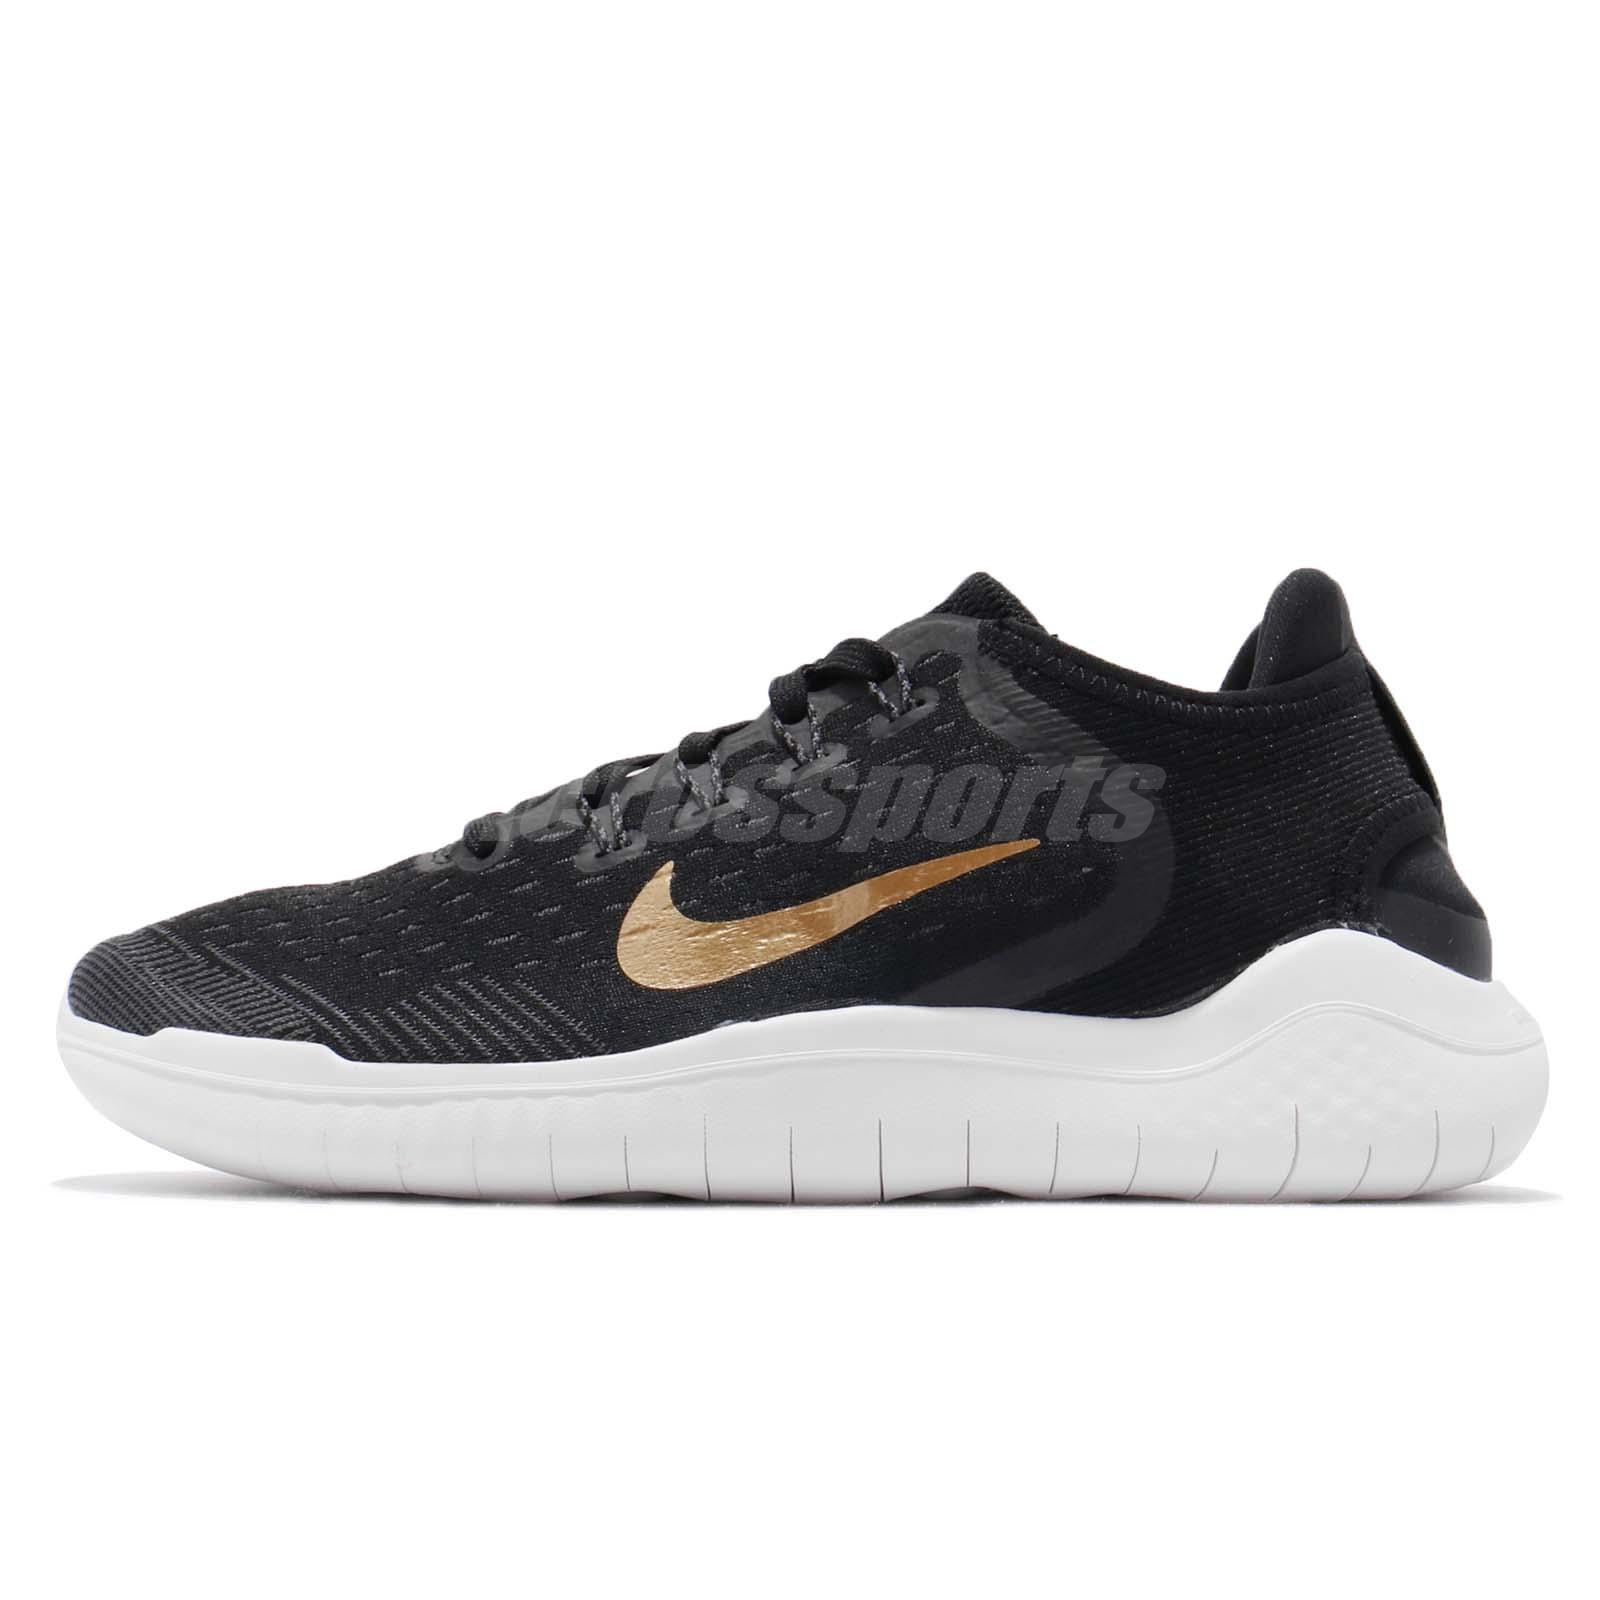 0b1e3d625f0b Nike Wmns Free RN 2018 Run Black Gold Women Running Shoes Sneakers  942837-008